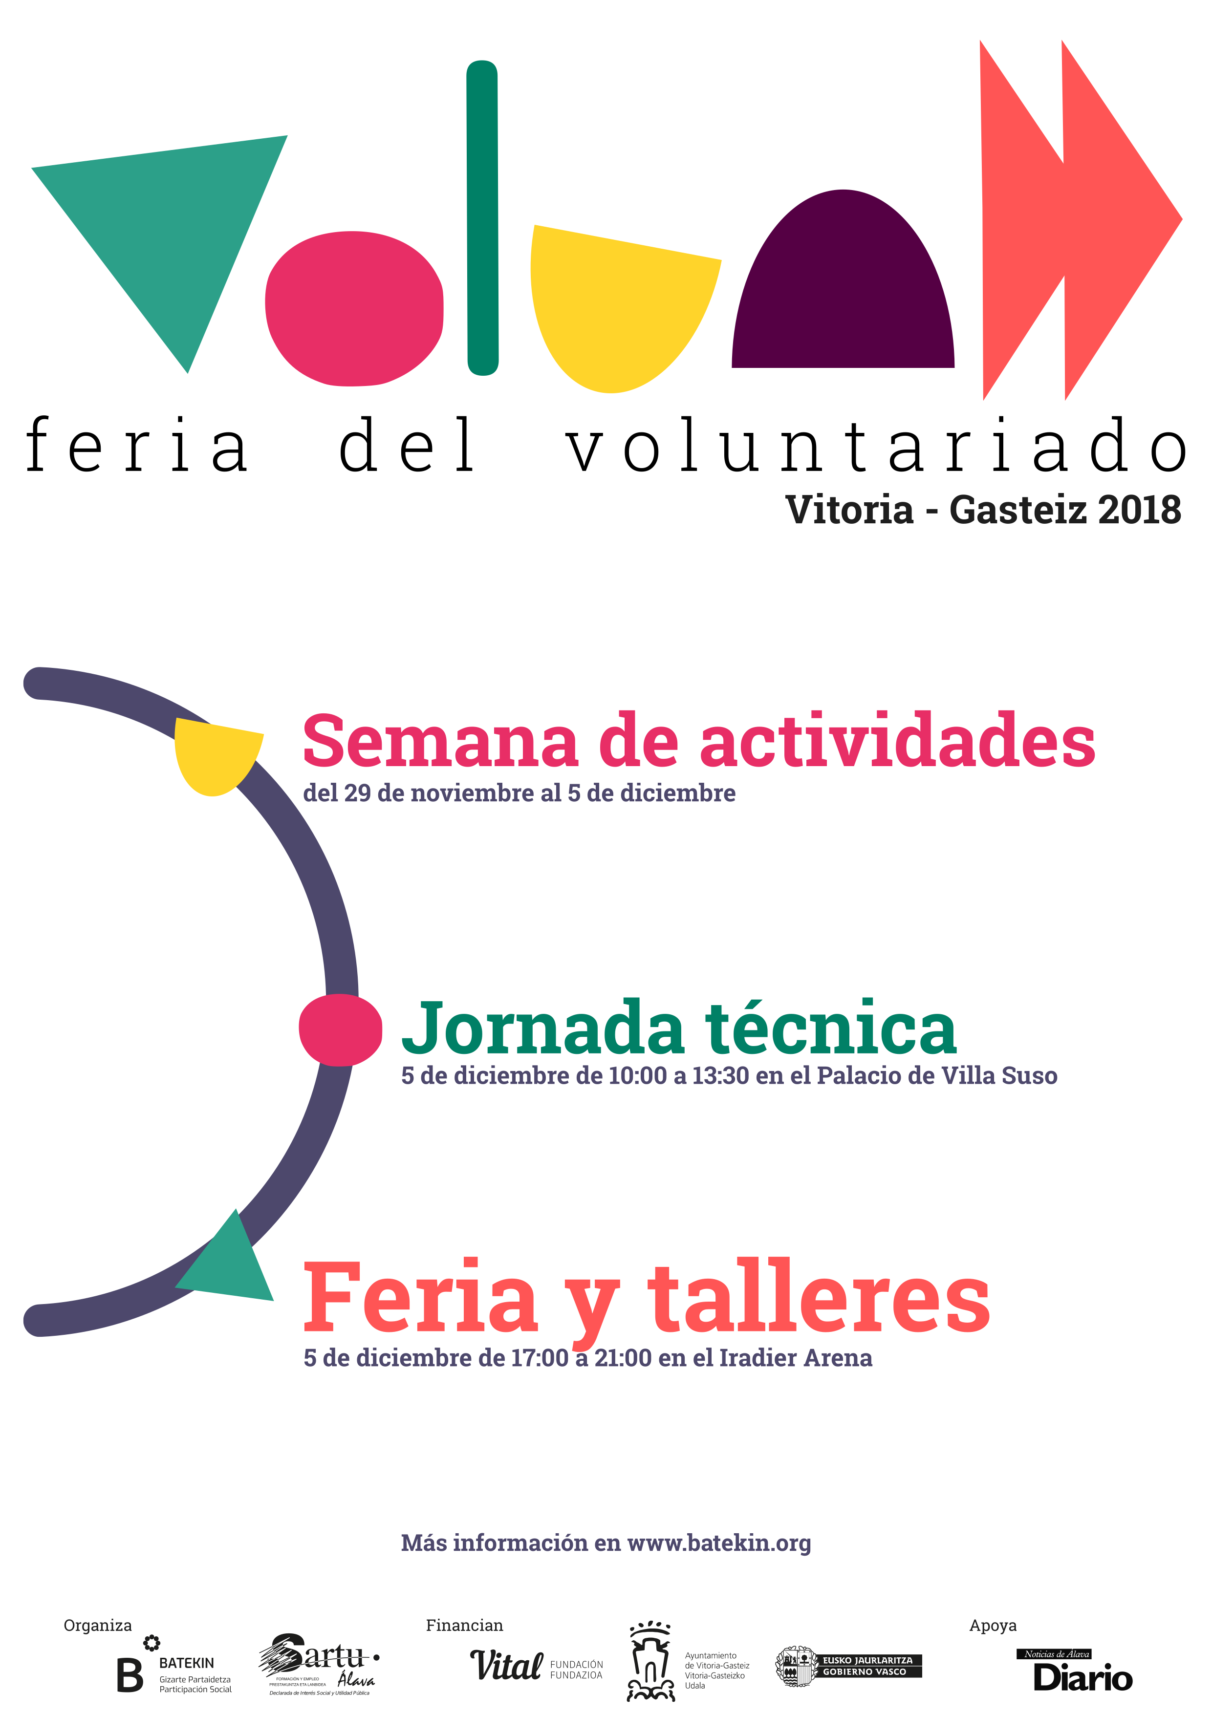 Día Internacional del Voluntariado